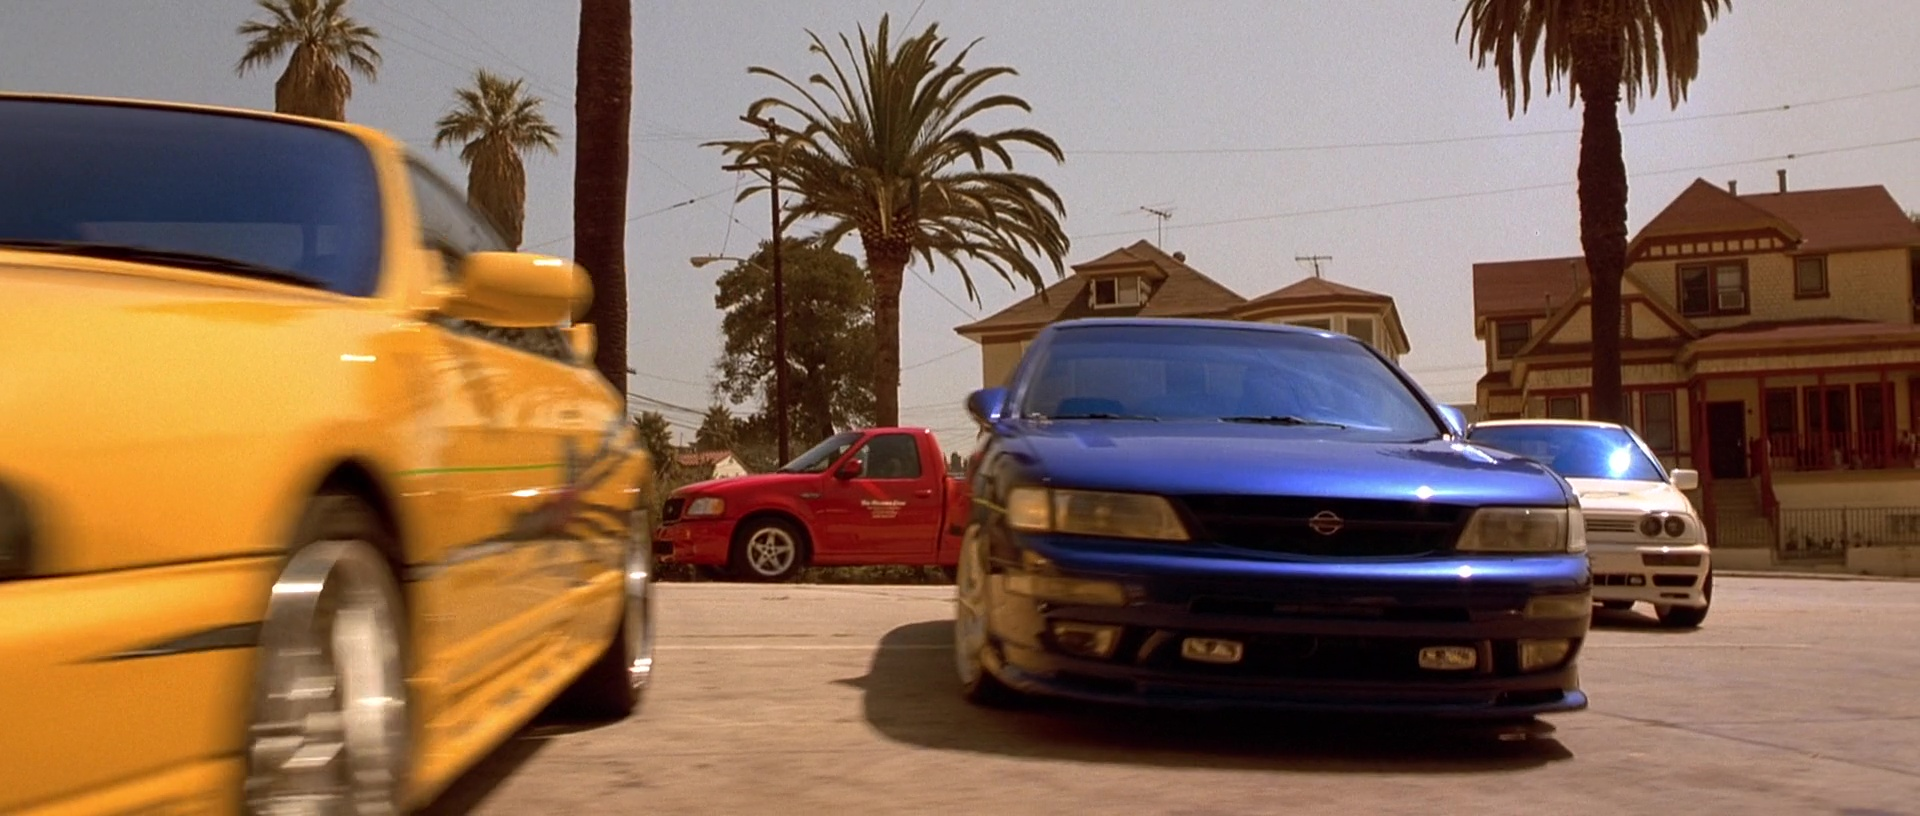 Image Skyline Maxima Amp Jetta Jpg The Fast And The